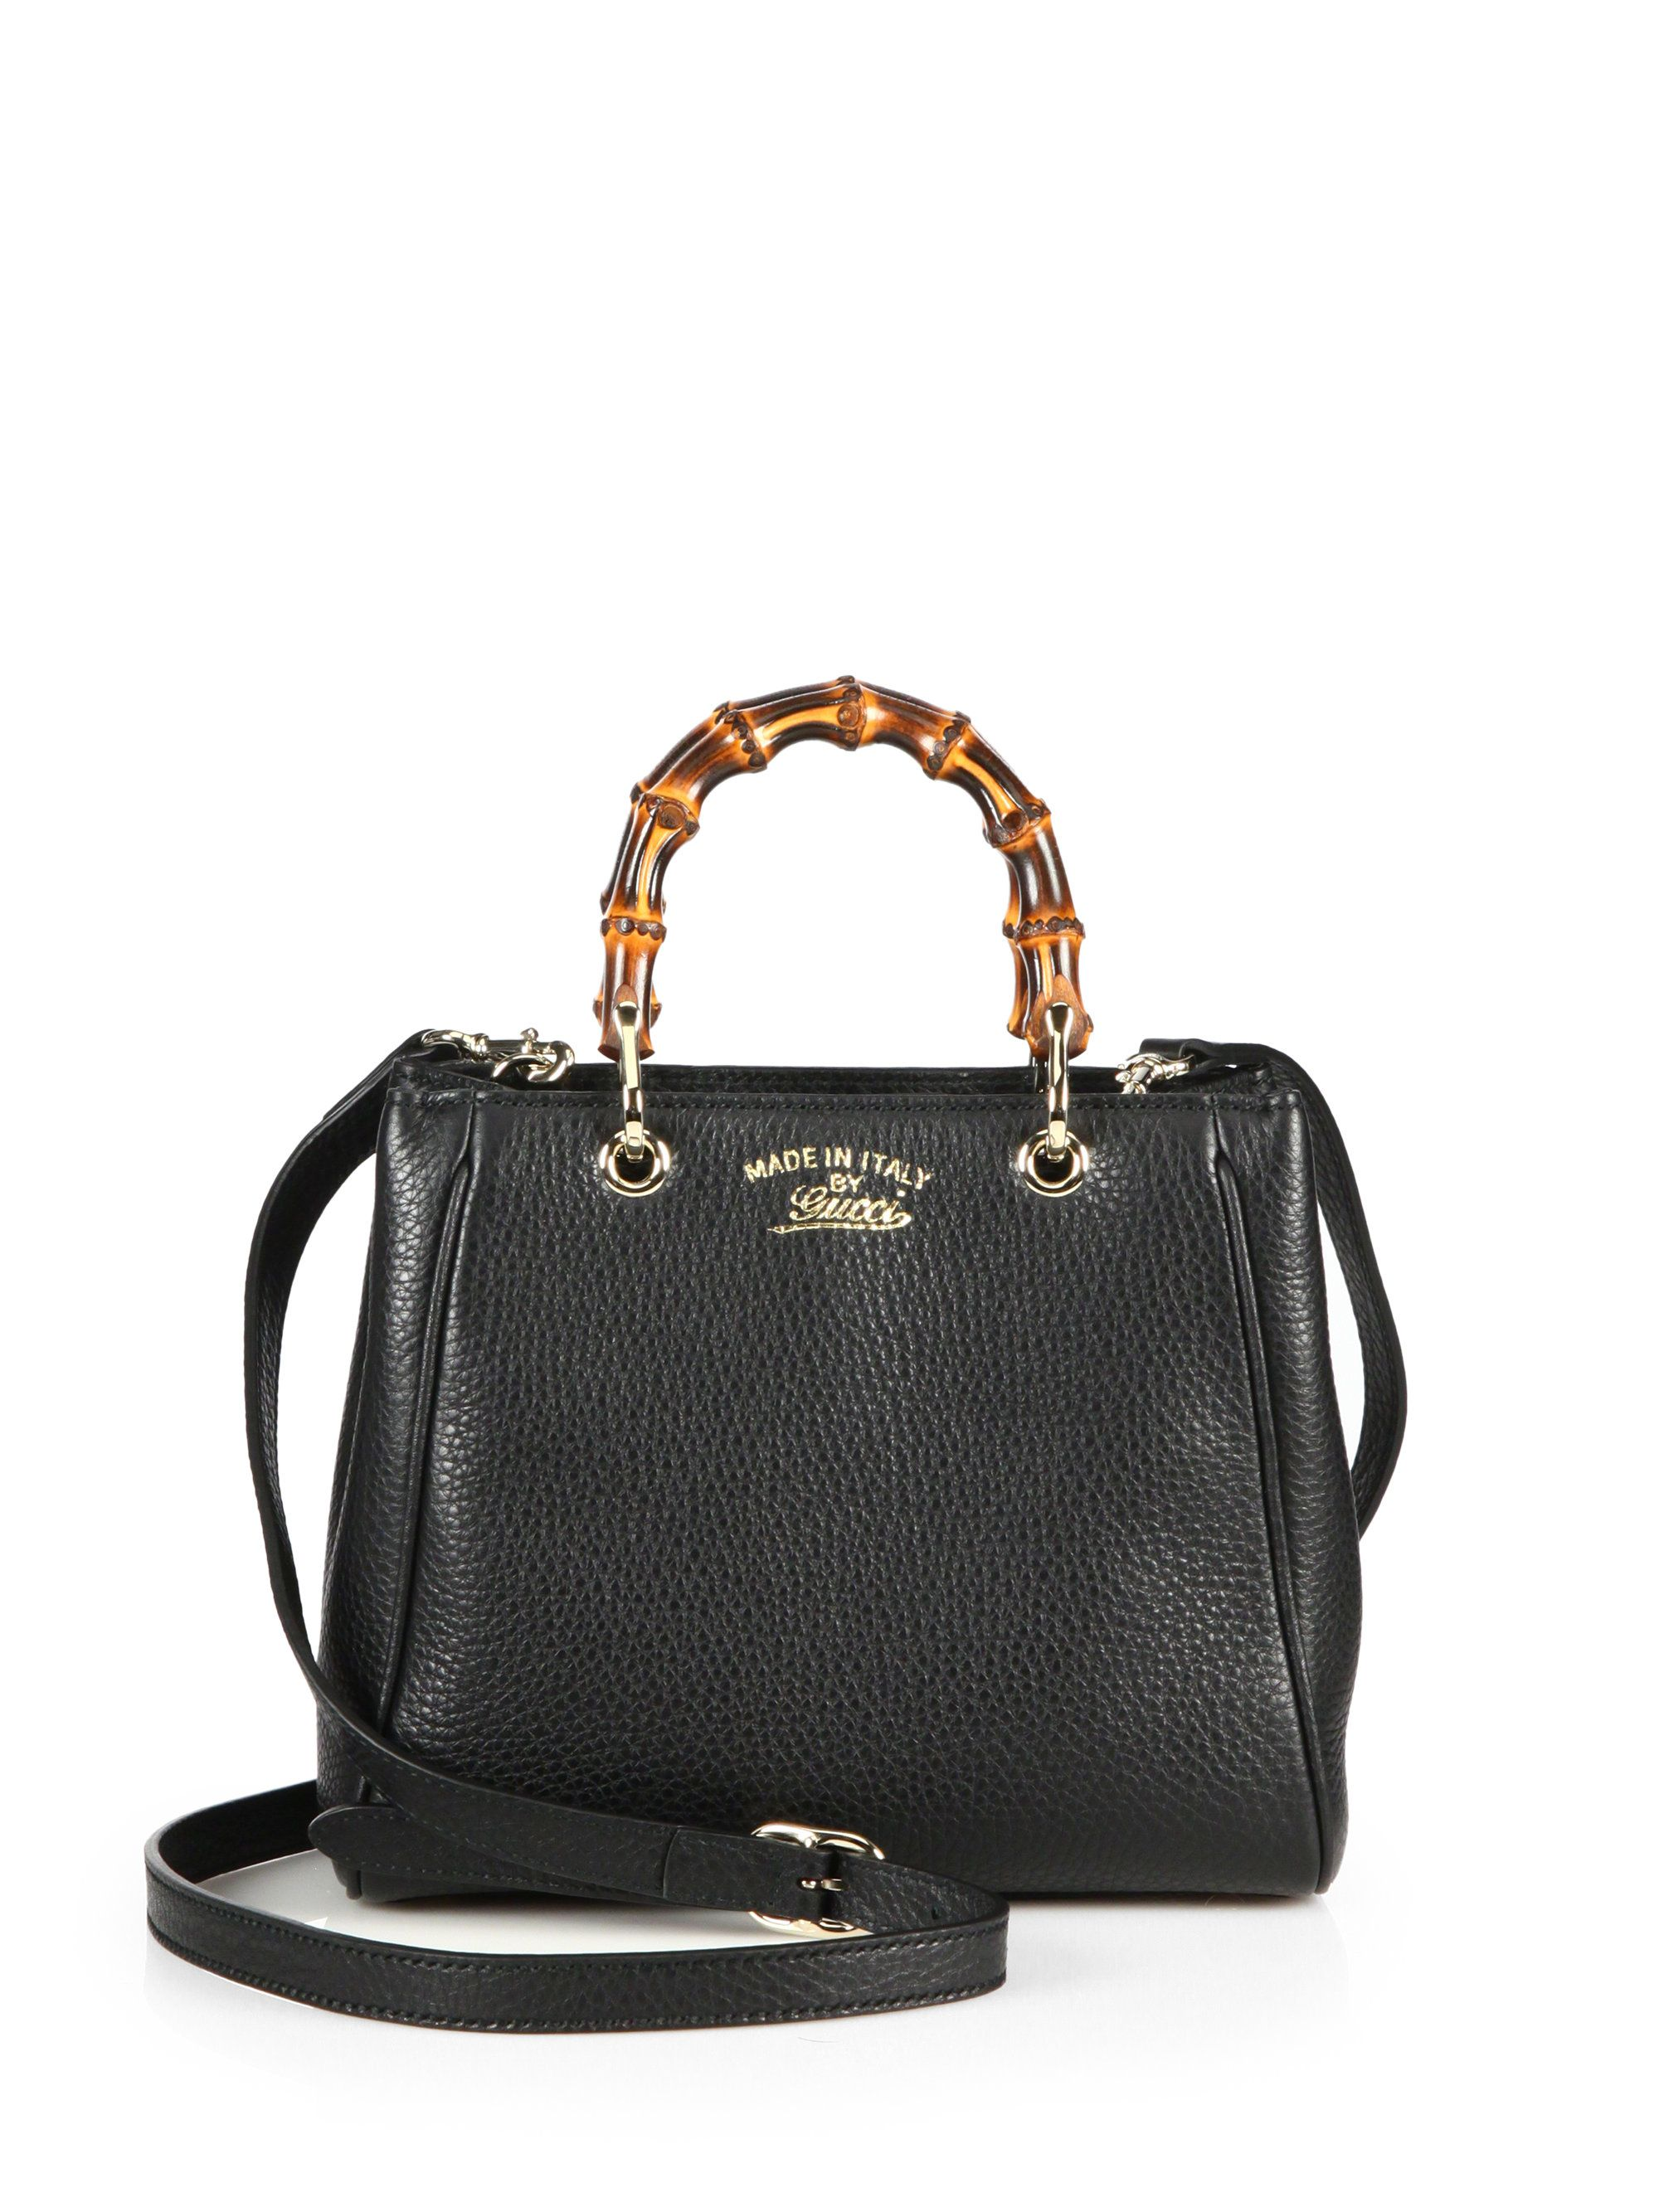 3ed21f6b05bd Gucci Bamboo Shopper Mini Leather Top Handle Bag in Black (NERO-BLACK) |  Lyst